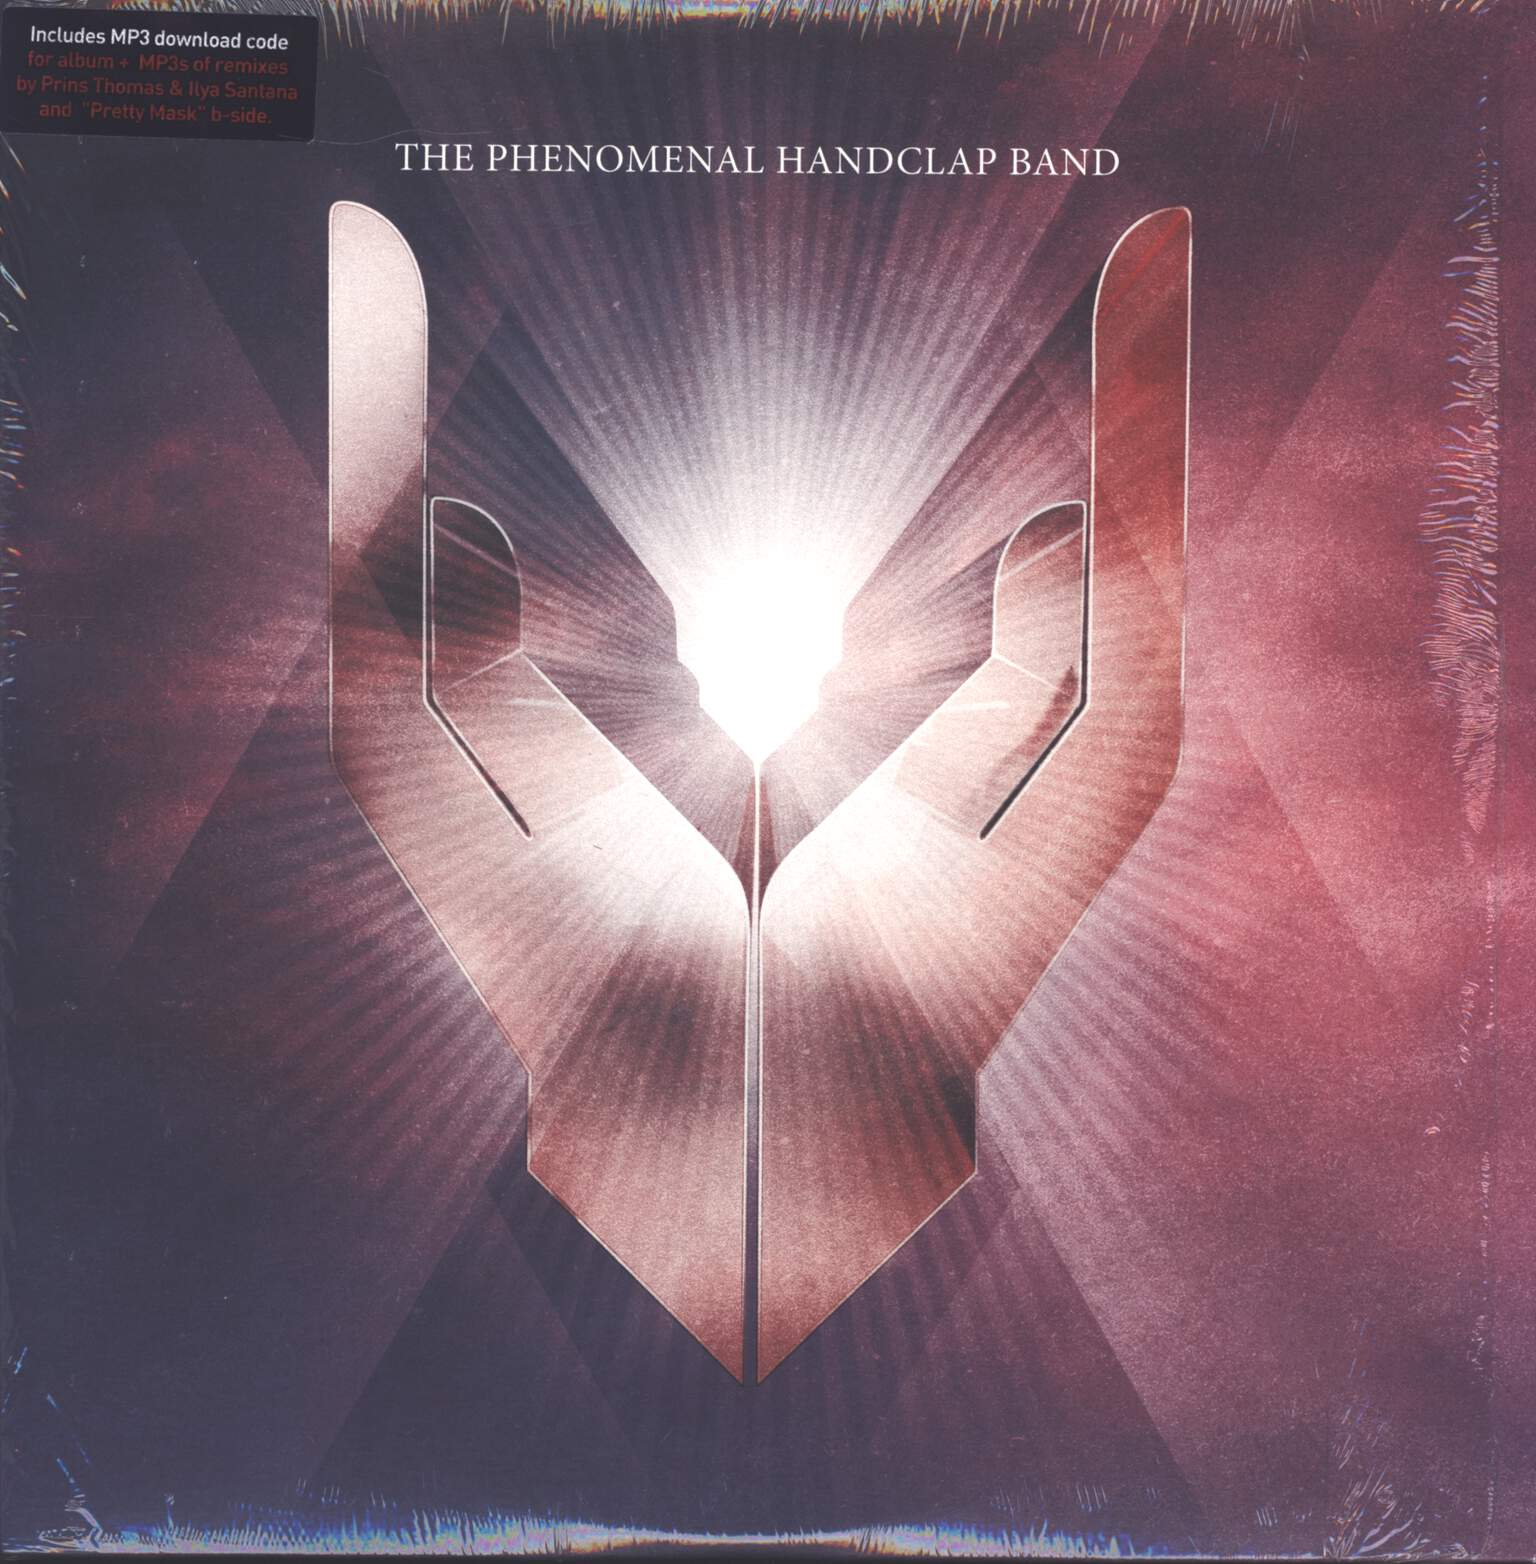 The Phenomenal Handclap Band: The Phenomenal Handclap Band, LP (Vinyl)